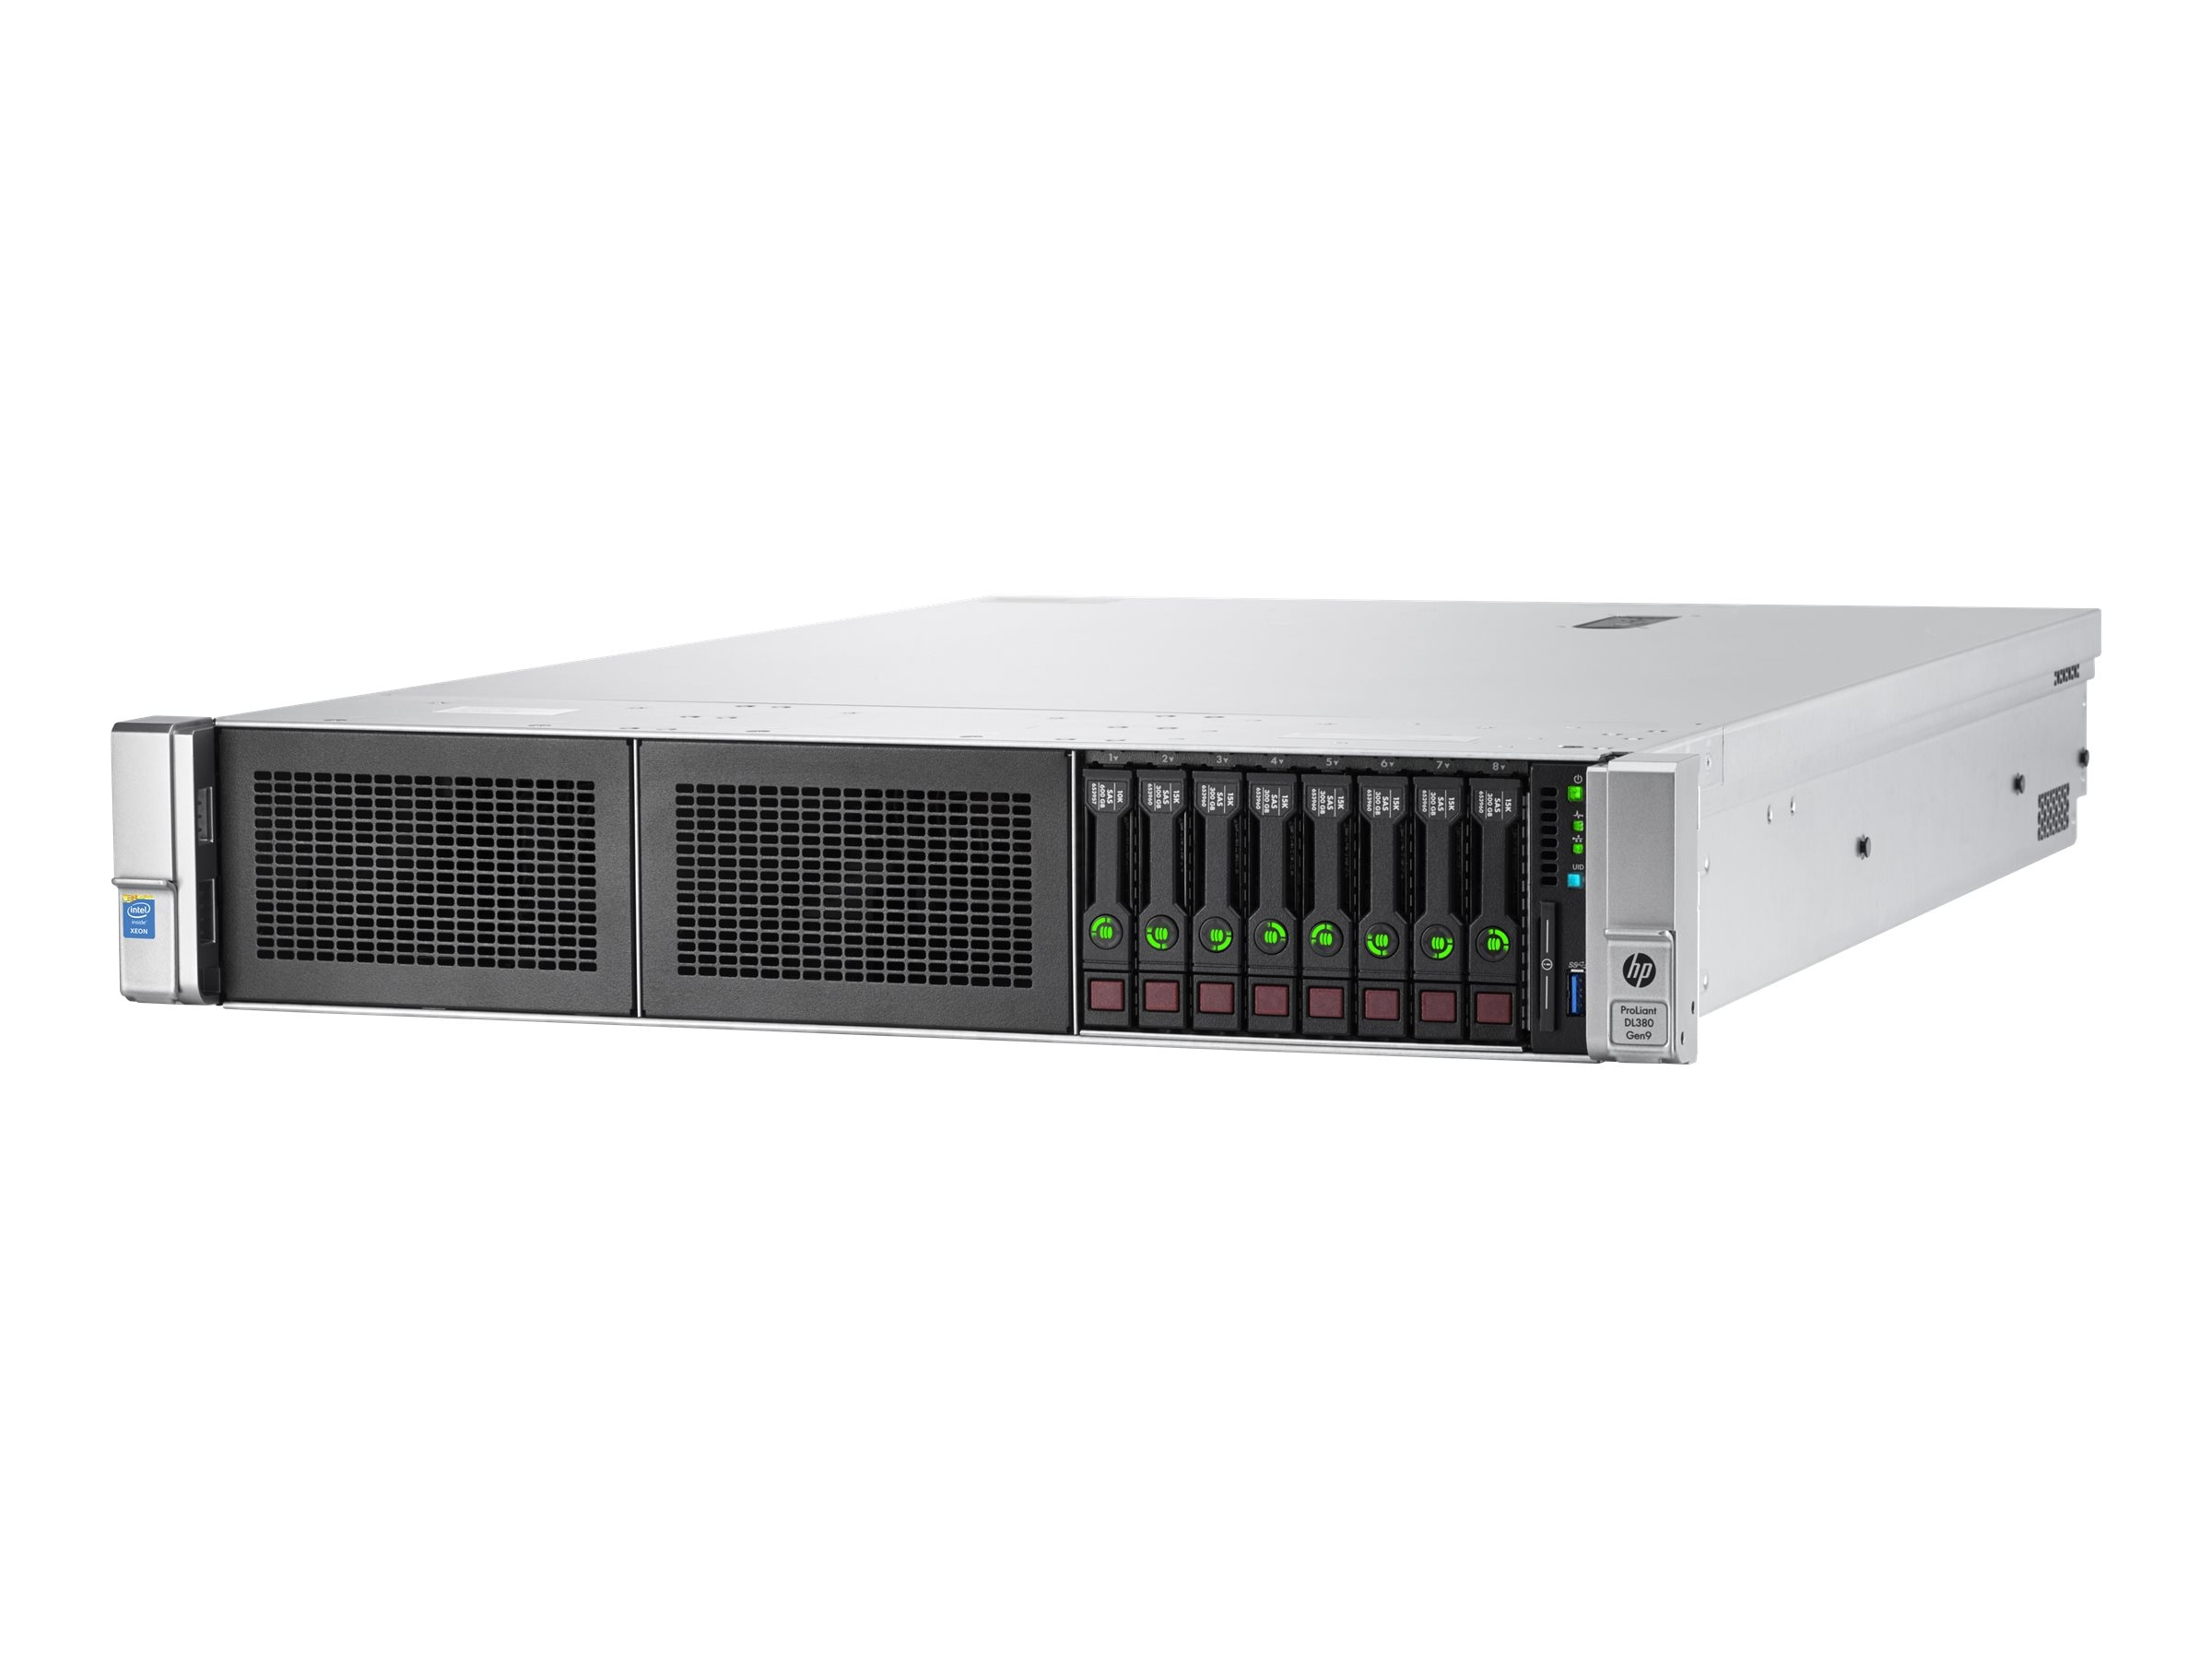 HPE Smart Buy ProLiant DL380 Gen9 Intel 2.6GHz Xeon, 800077-S01, 18107025, Servers